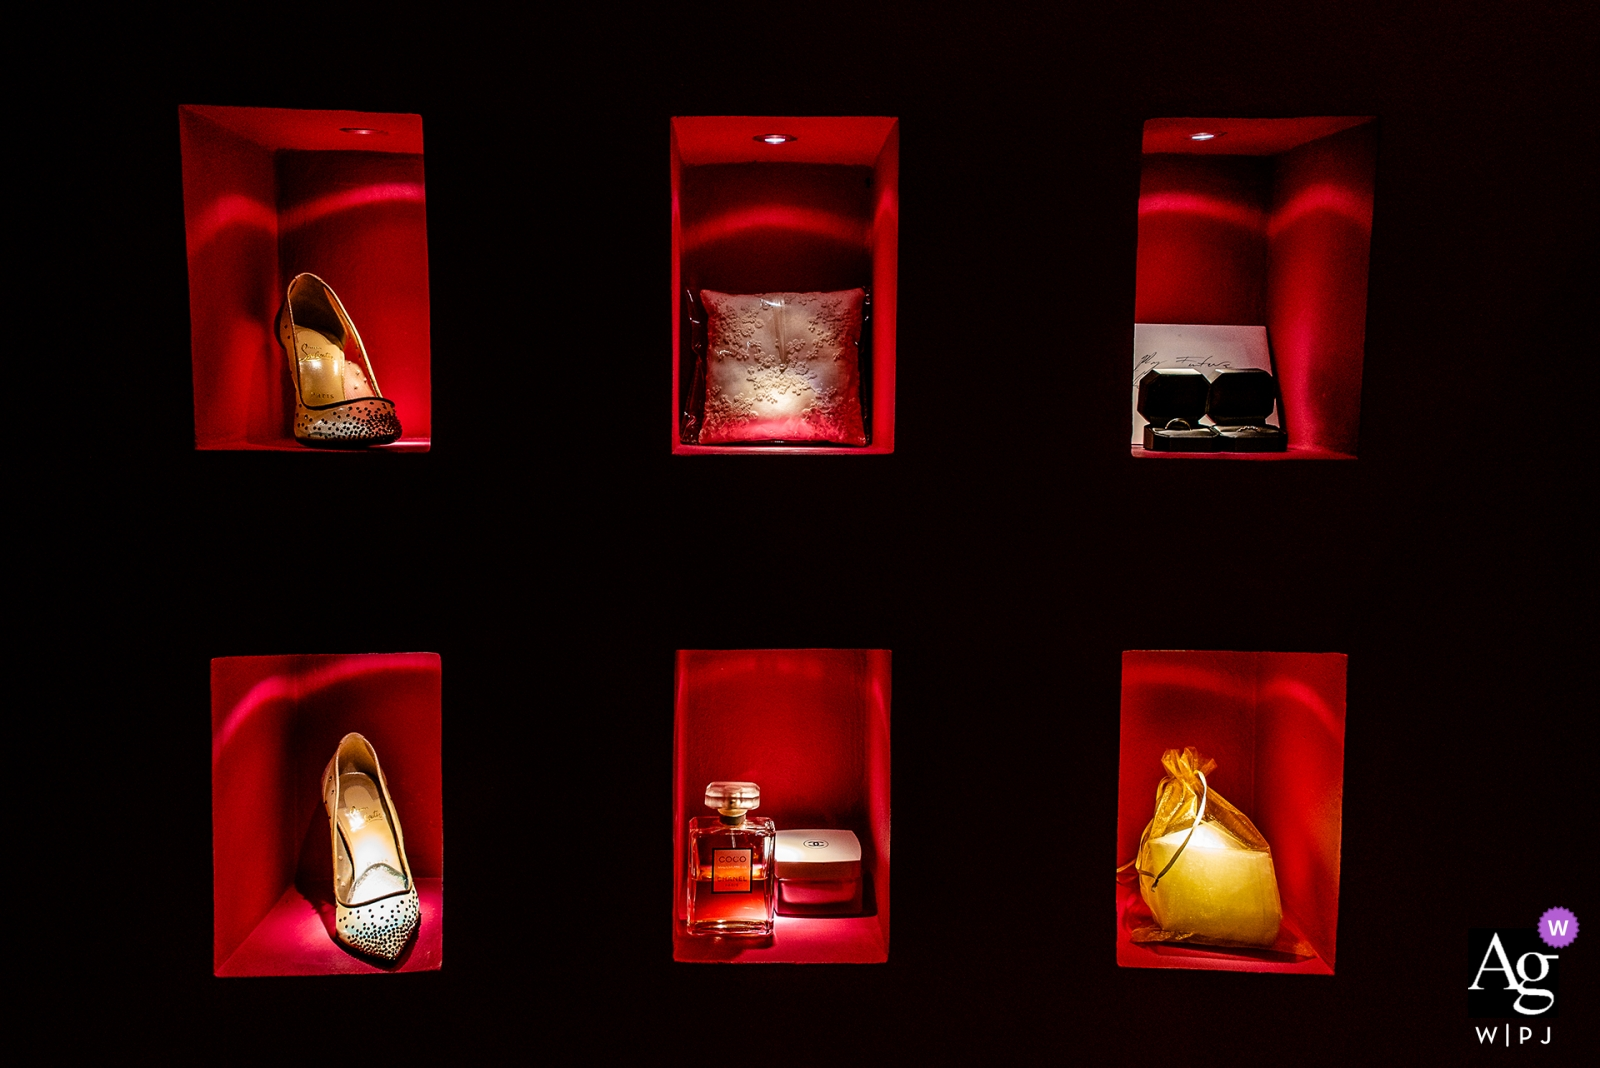 Hotel Xcaret Mexico wedding photographer | Bride accessories detail in small red cubicles